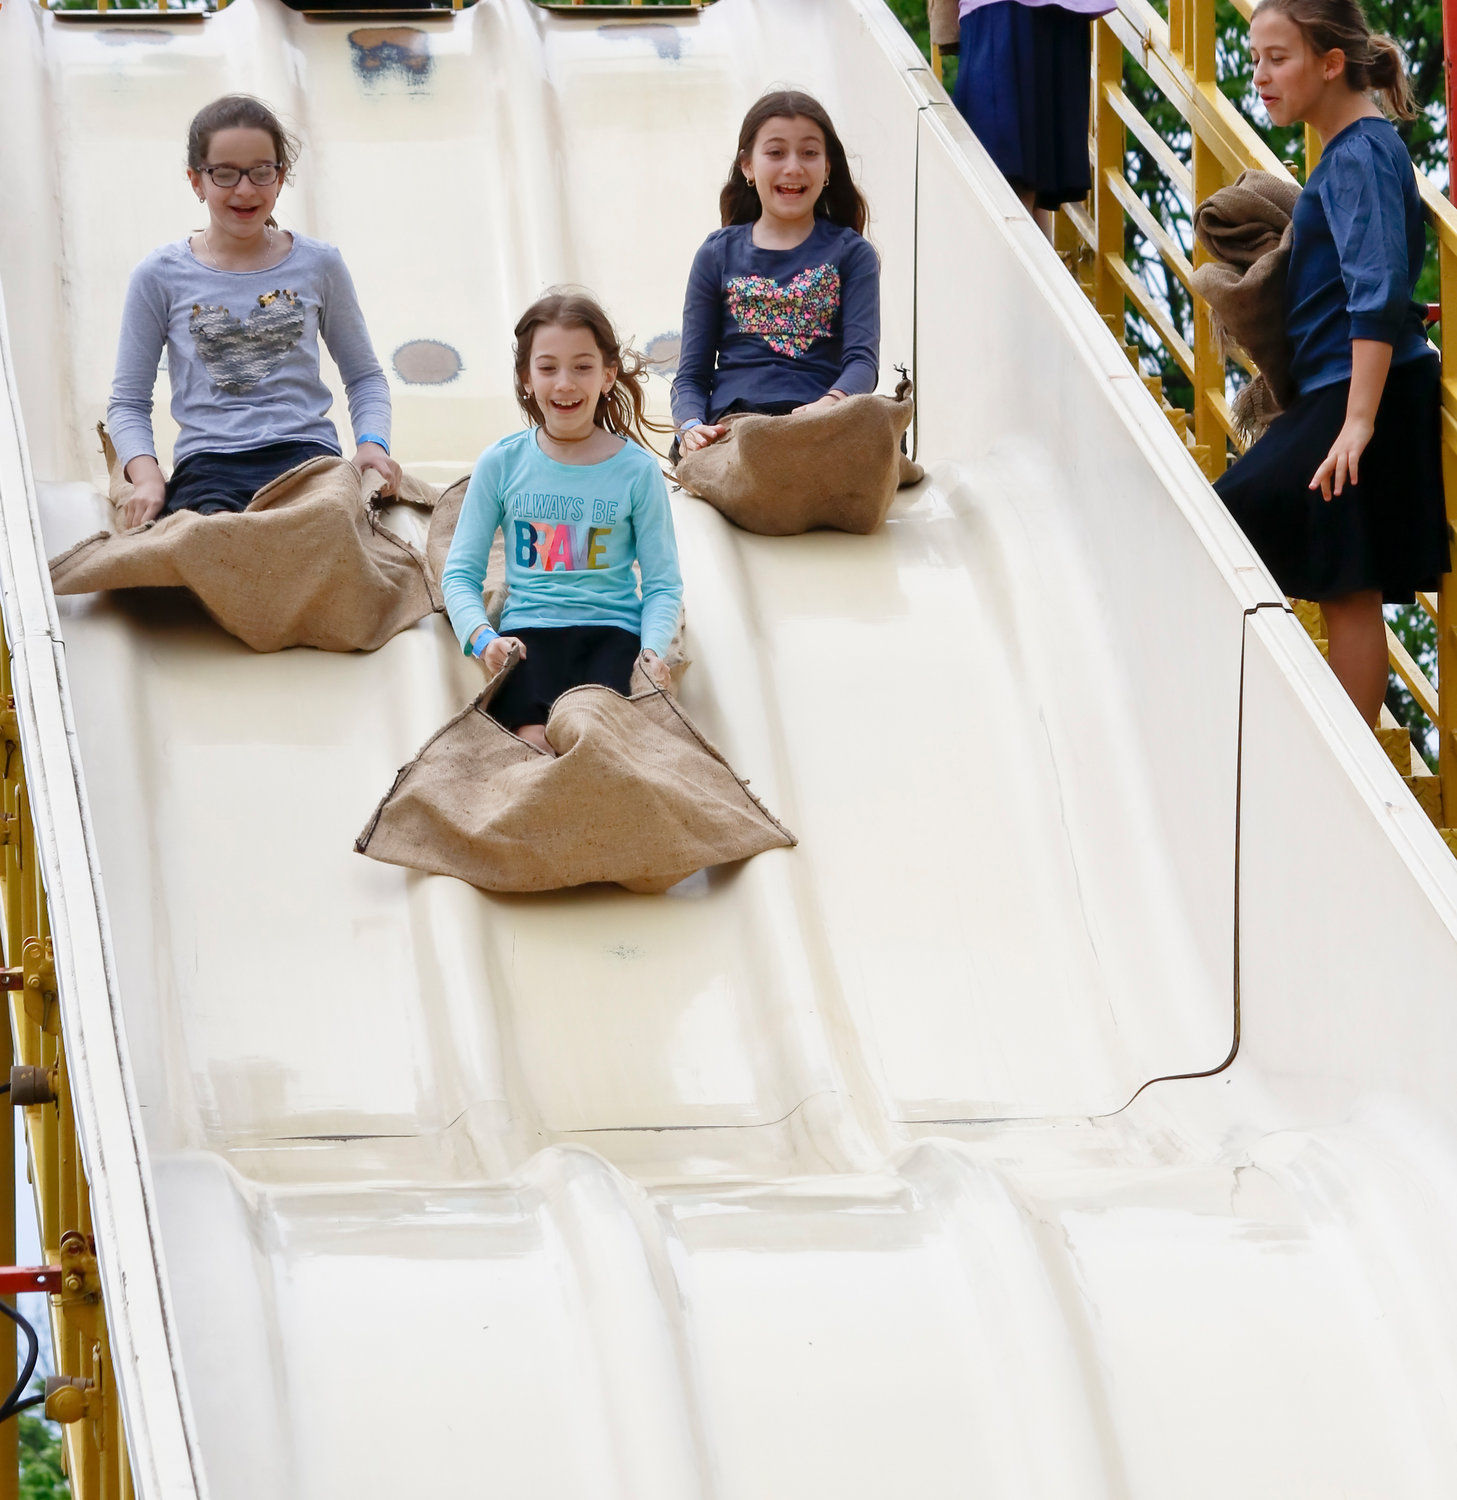 The slide was one of the more popular rides at the Kulanu Fair in Andrew J. Parise Cedarhurst Park on May 19. Shulamith School students from left, Rena Gelbstein, Meira Moskowitz and Ahuba Moskowitz all appeared to enjoy downward trip.